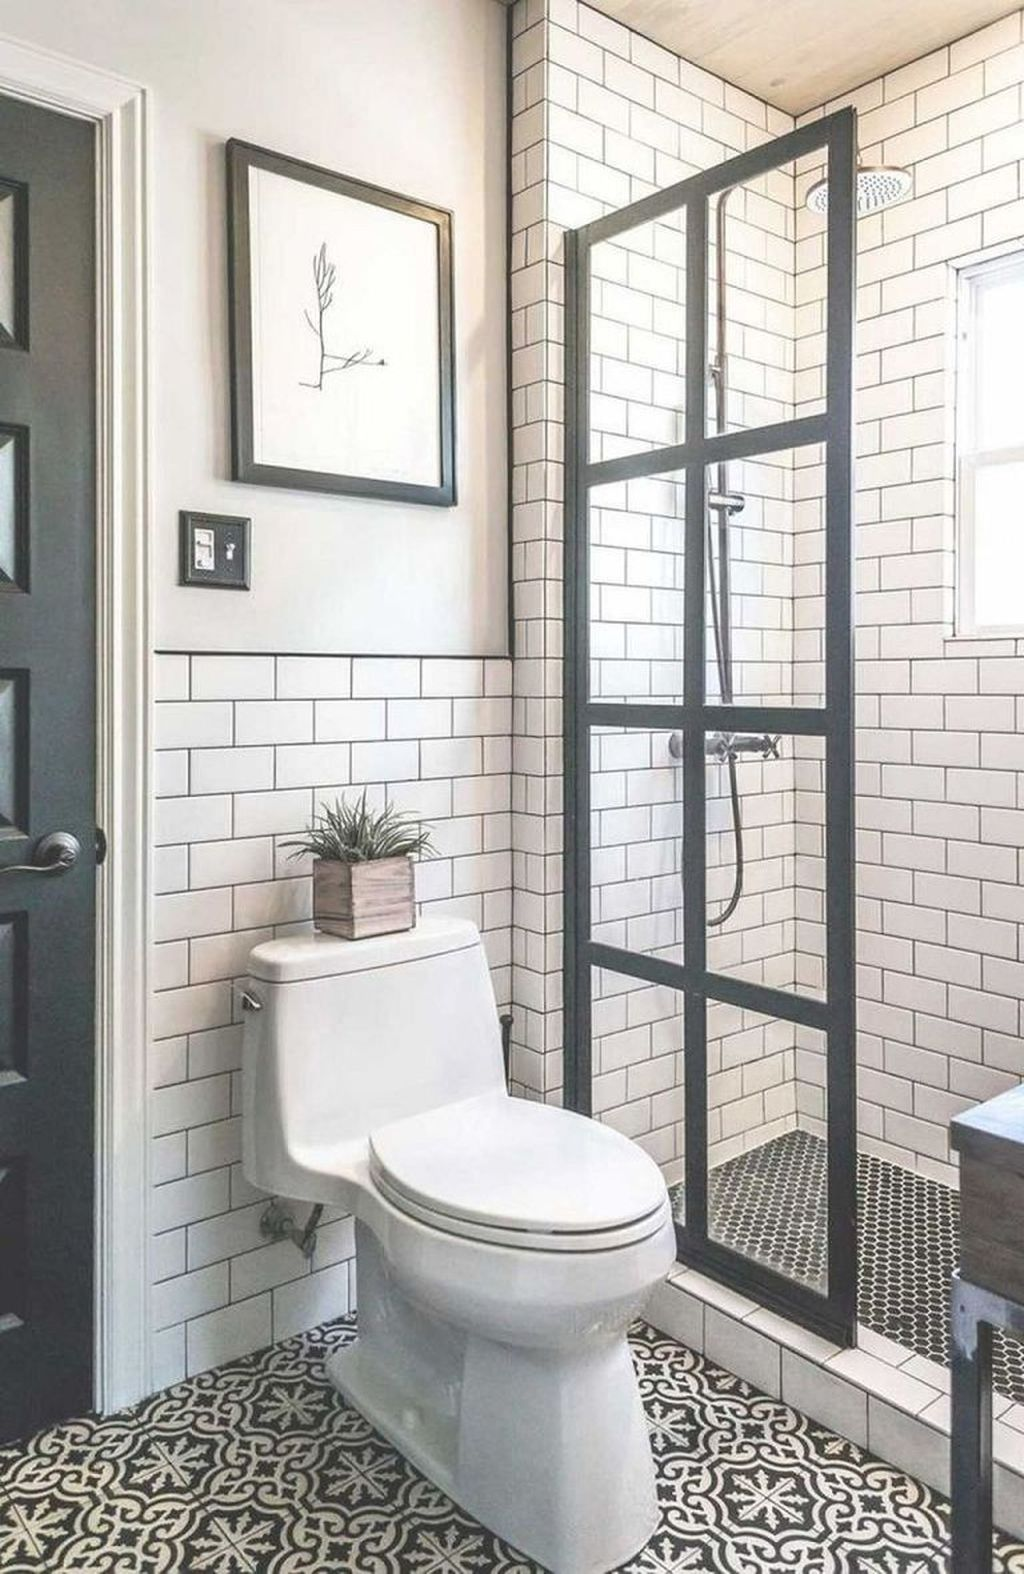 Awesome Small Bathroom Remodel Ideas On A Budget 15